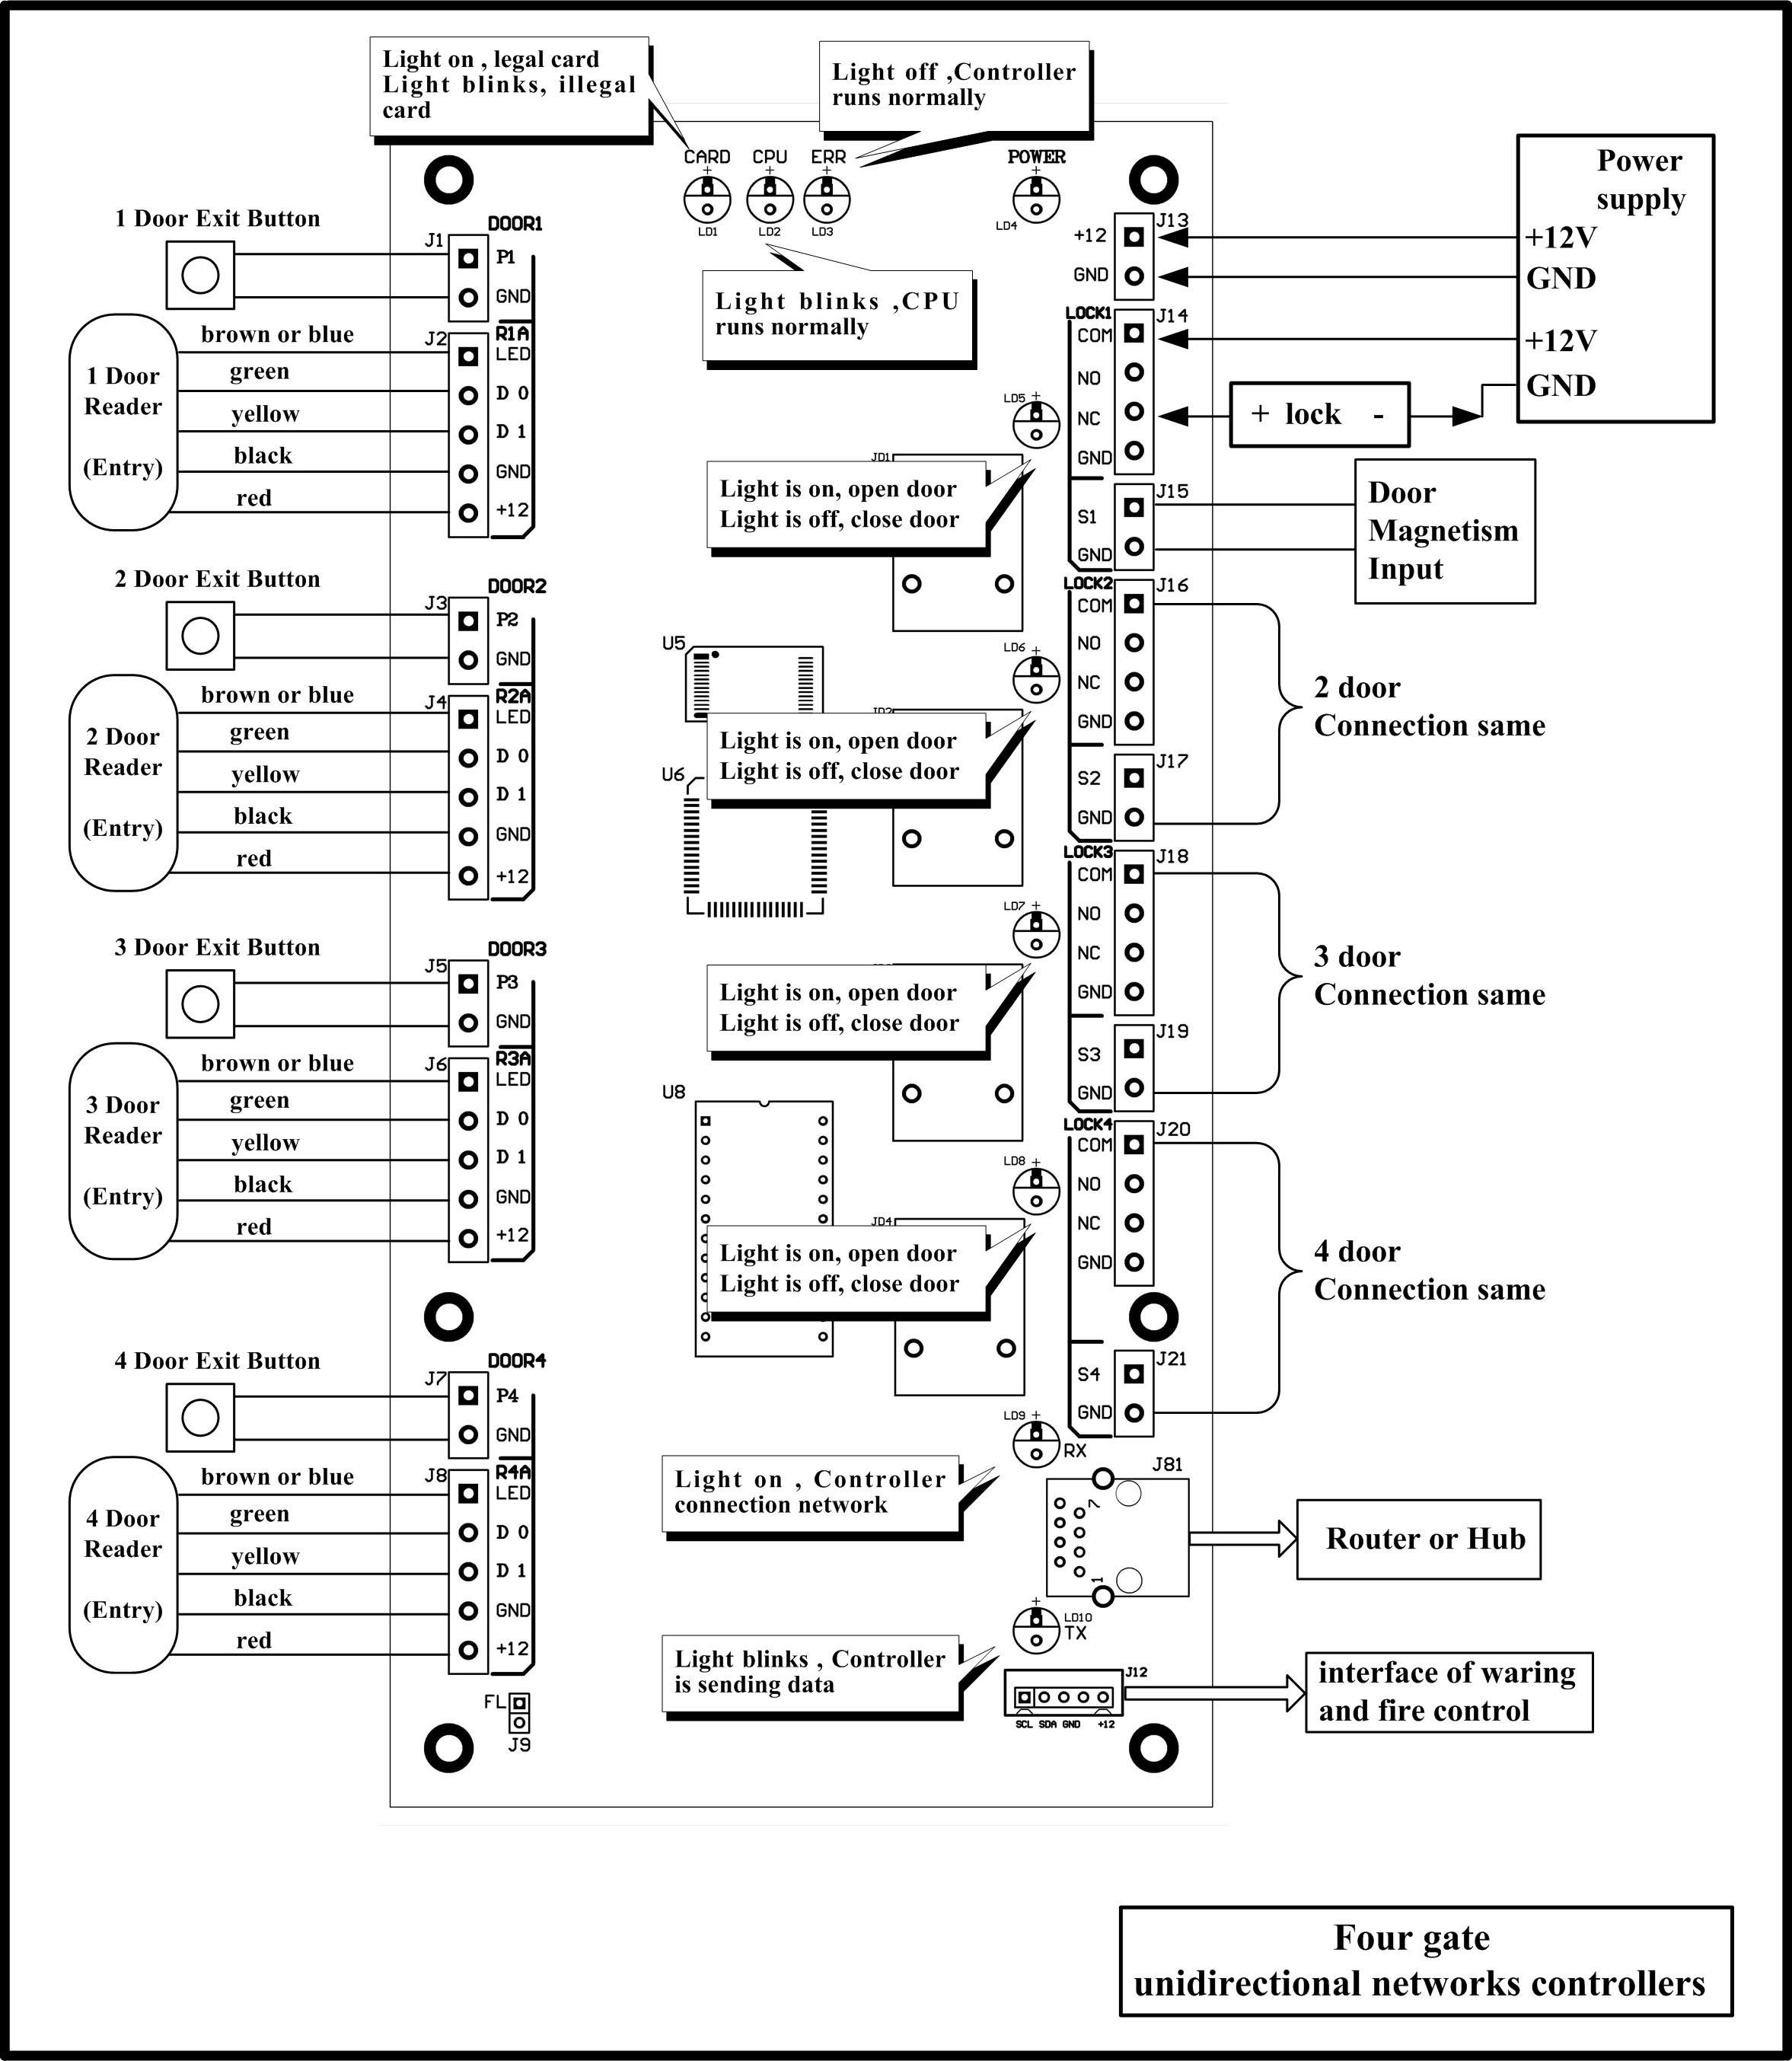 Hid Card Reader Wiring Diagram in 2021   Access control system, Access  control, Proximity cardPinterest